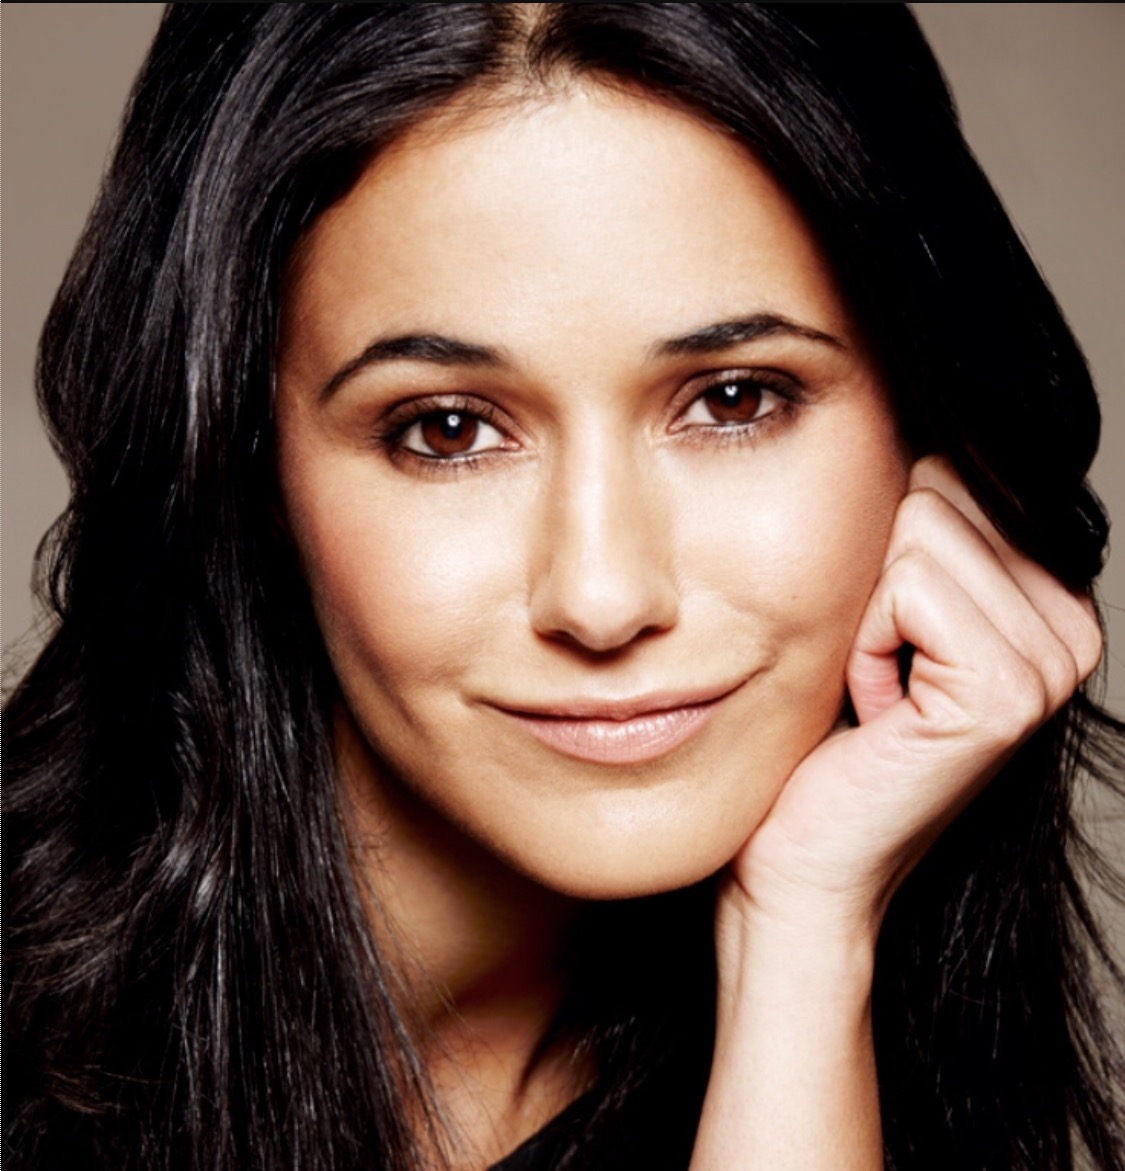 The event is co-hosted by the incredible Emmanuelle Chriqui!